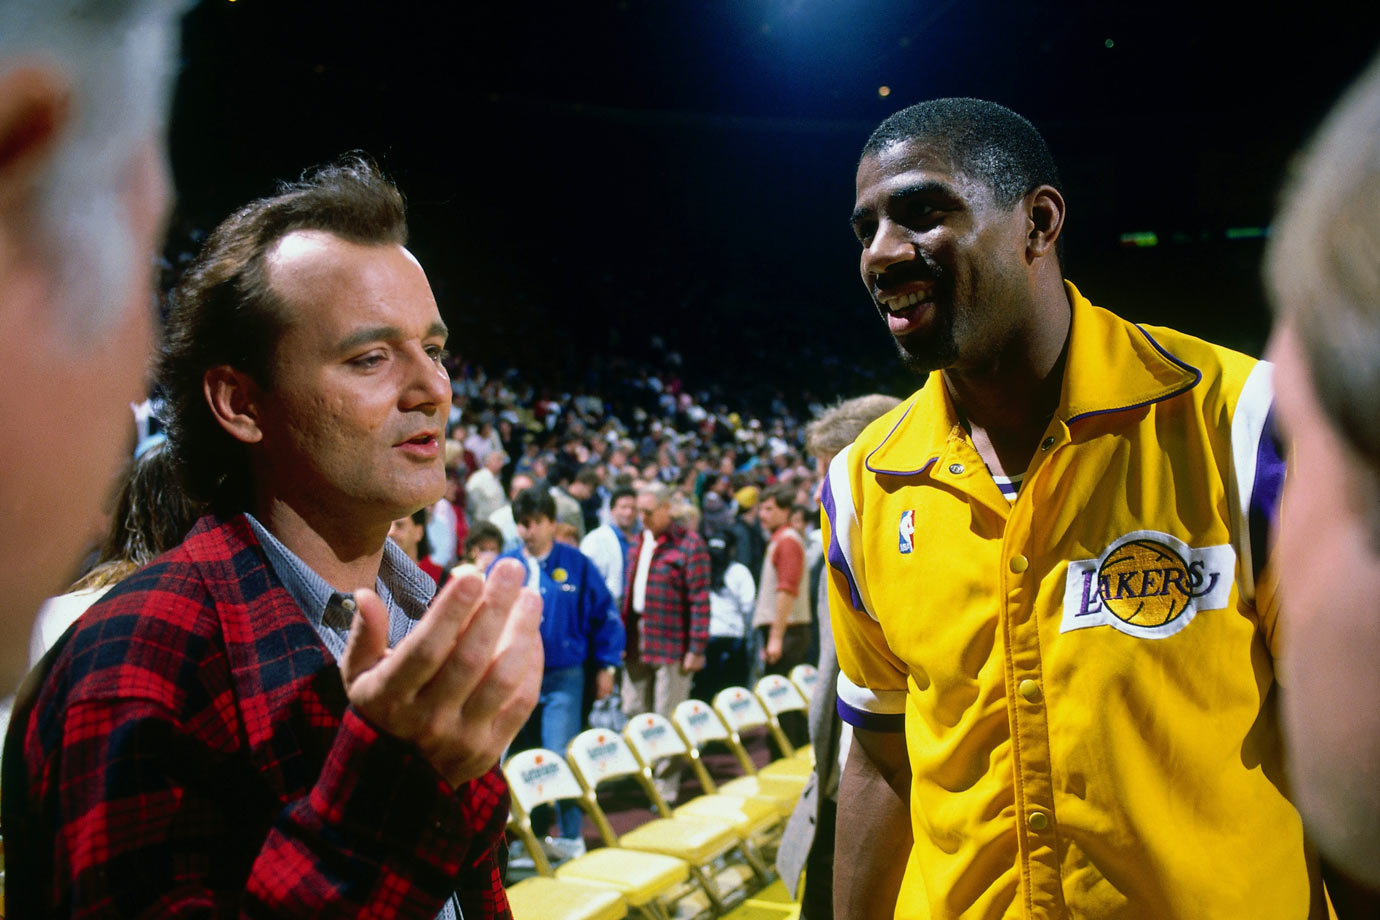 Bill Murray talks with Magic Johnson before a Los Angeles Lakers game in 1988 at the Great Western Forum in Inglewood, Calif.